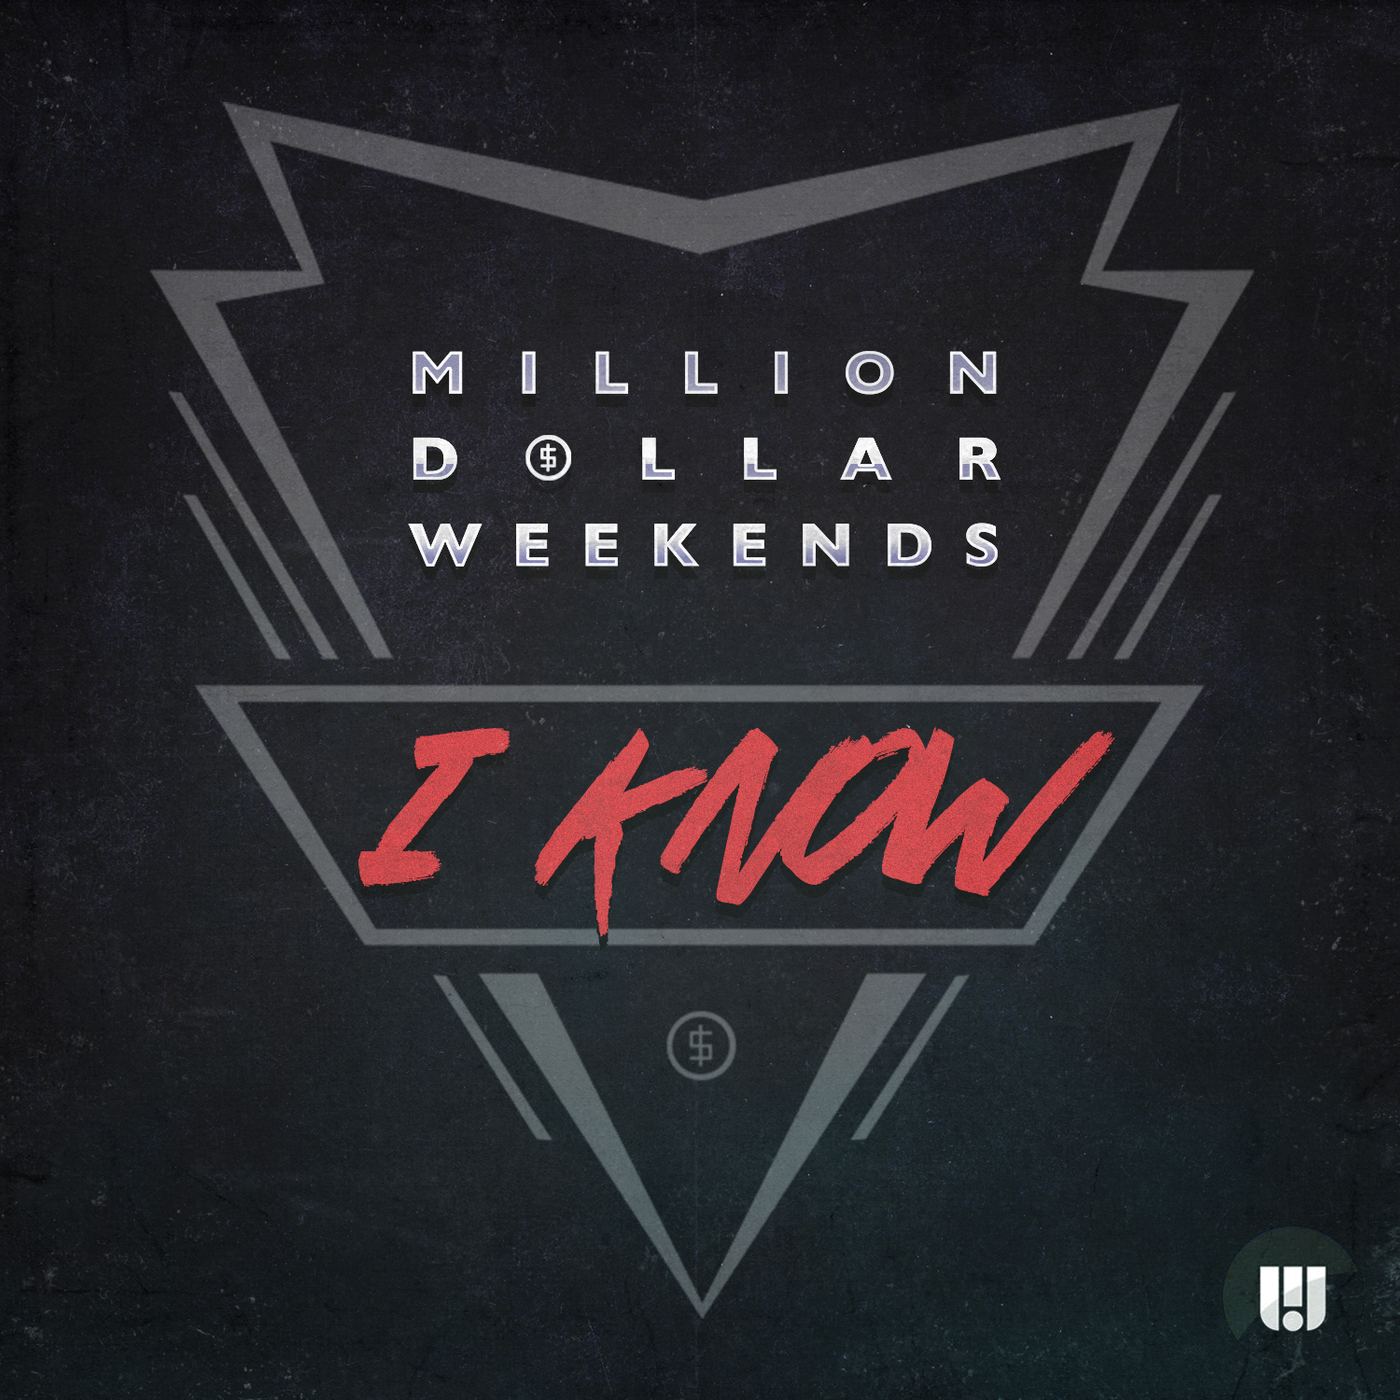 I Know - Million Dollar Weekends